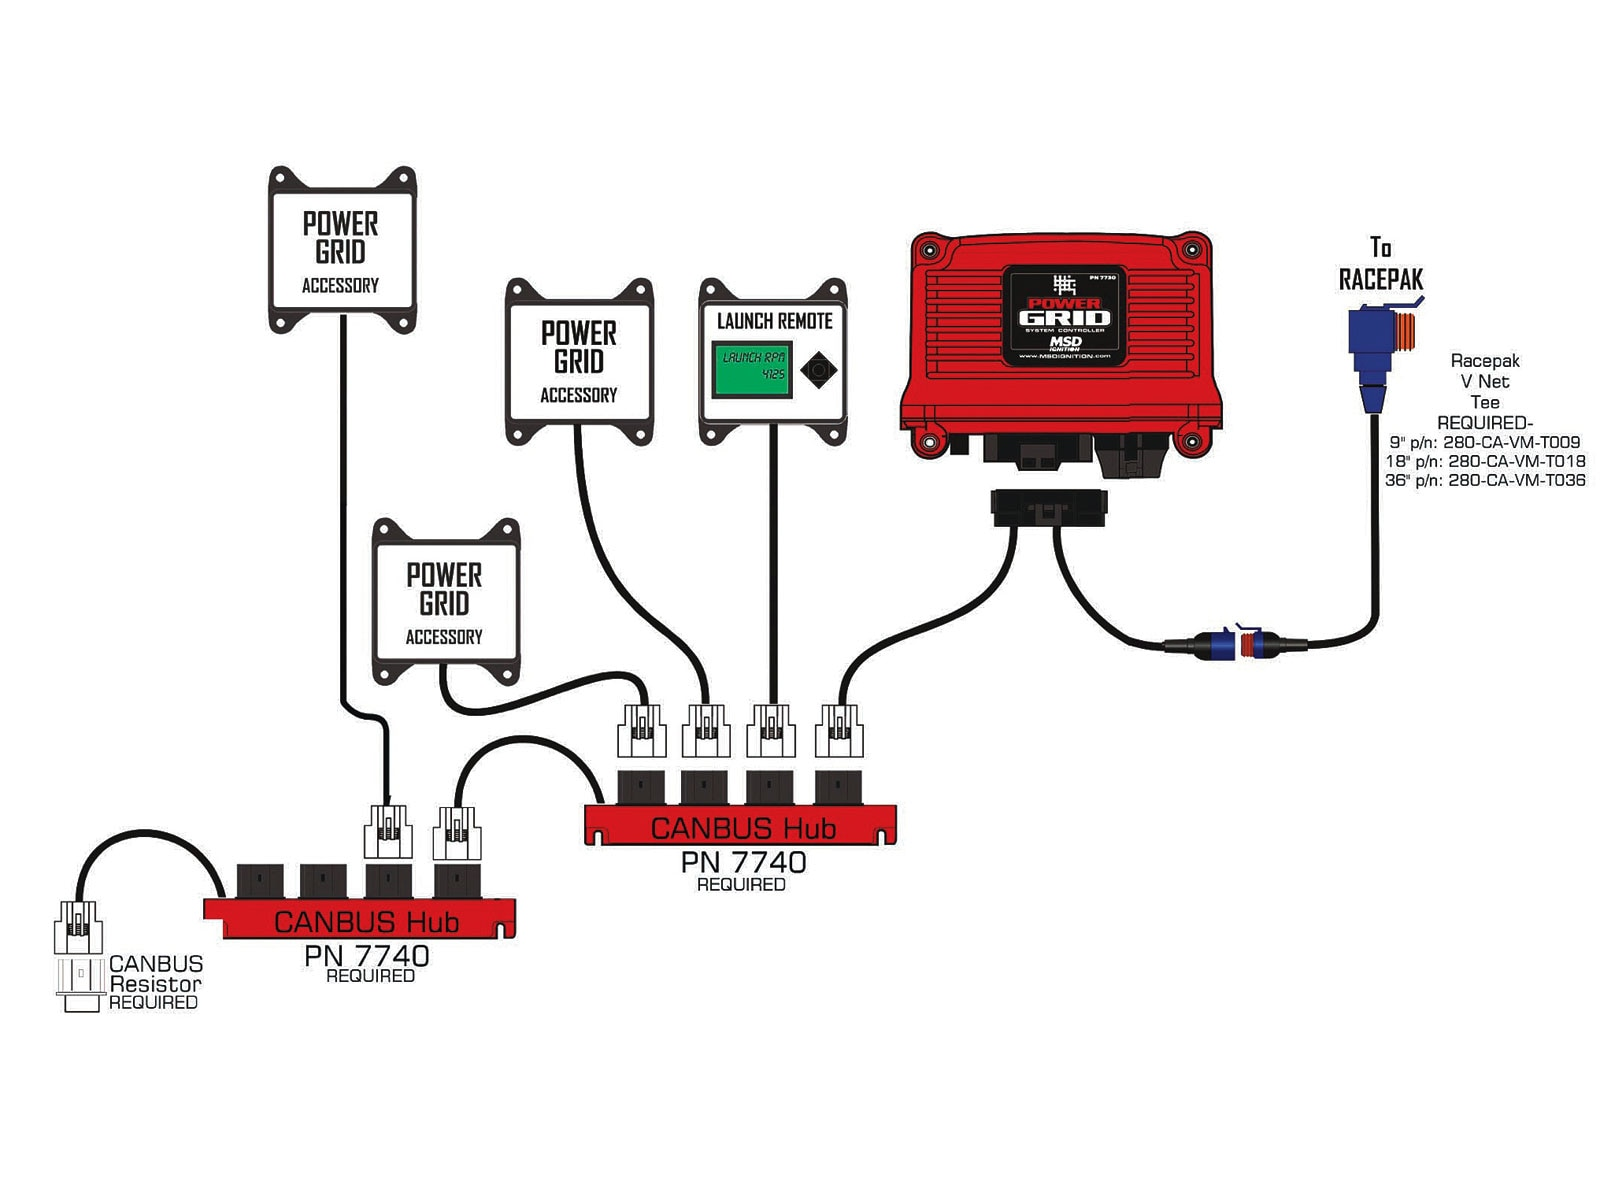 Power Grid Wiring Diagram - getting ready with wiring diagram on